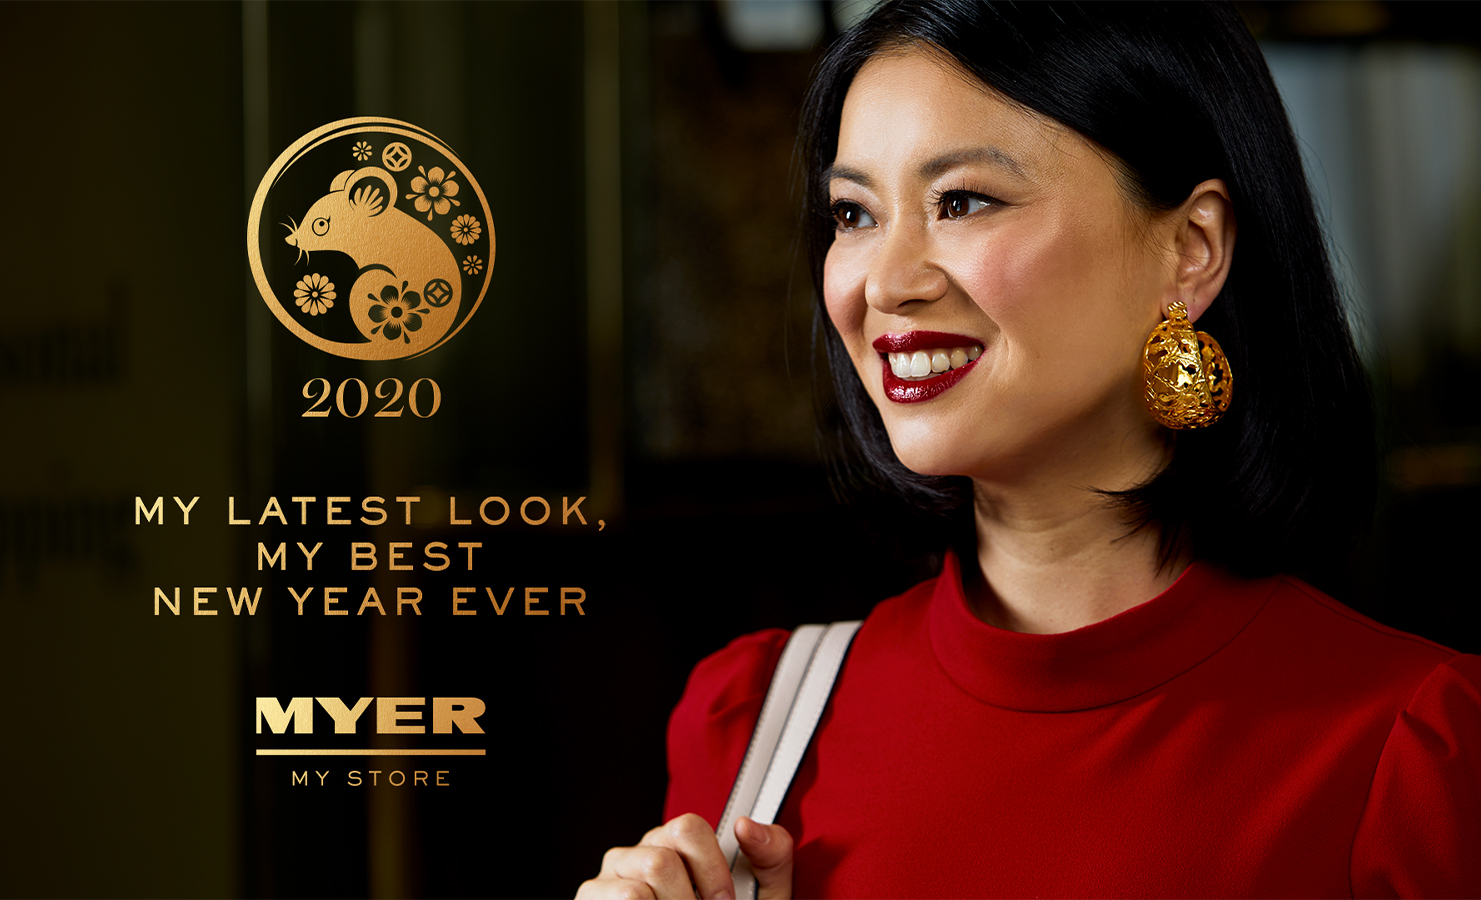 Myer Chinese New Year Video Still